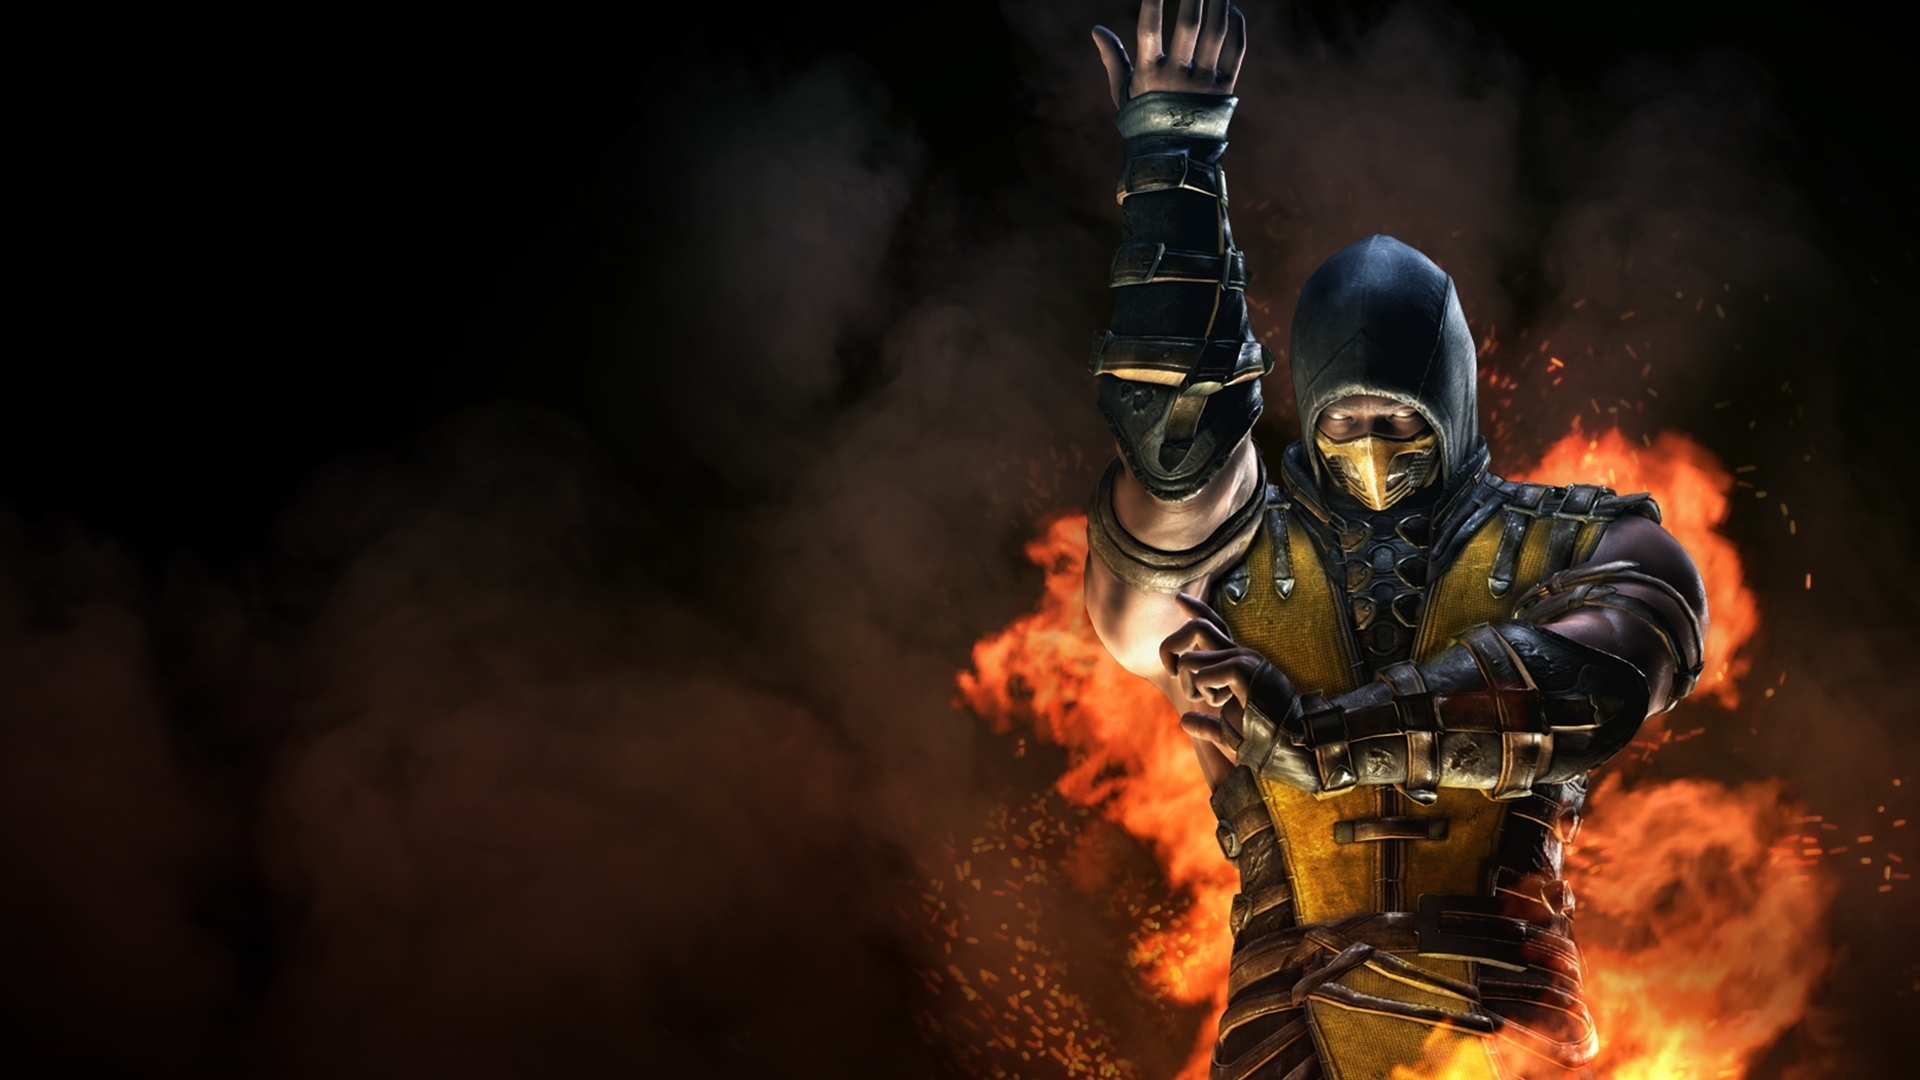 mortal kombat x inferno scorpion wallpapers | hd wallpapers | id #17989